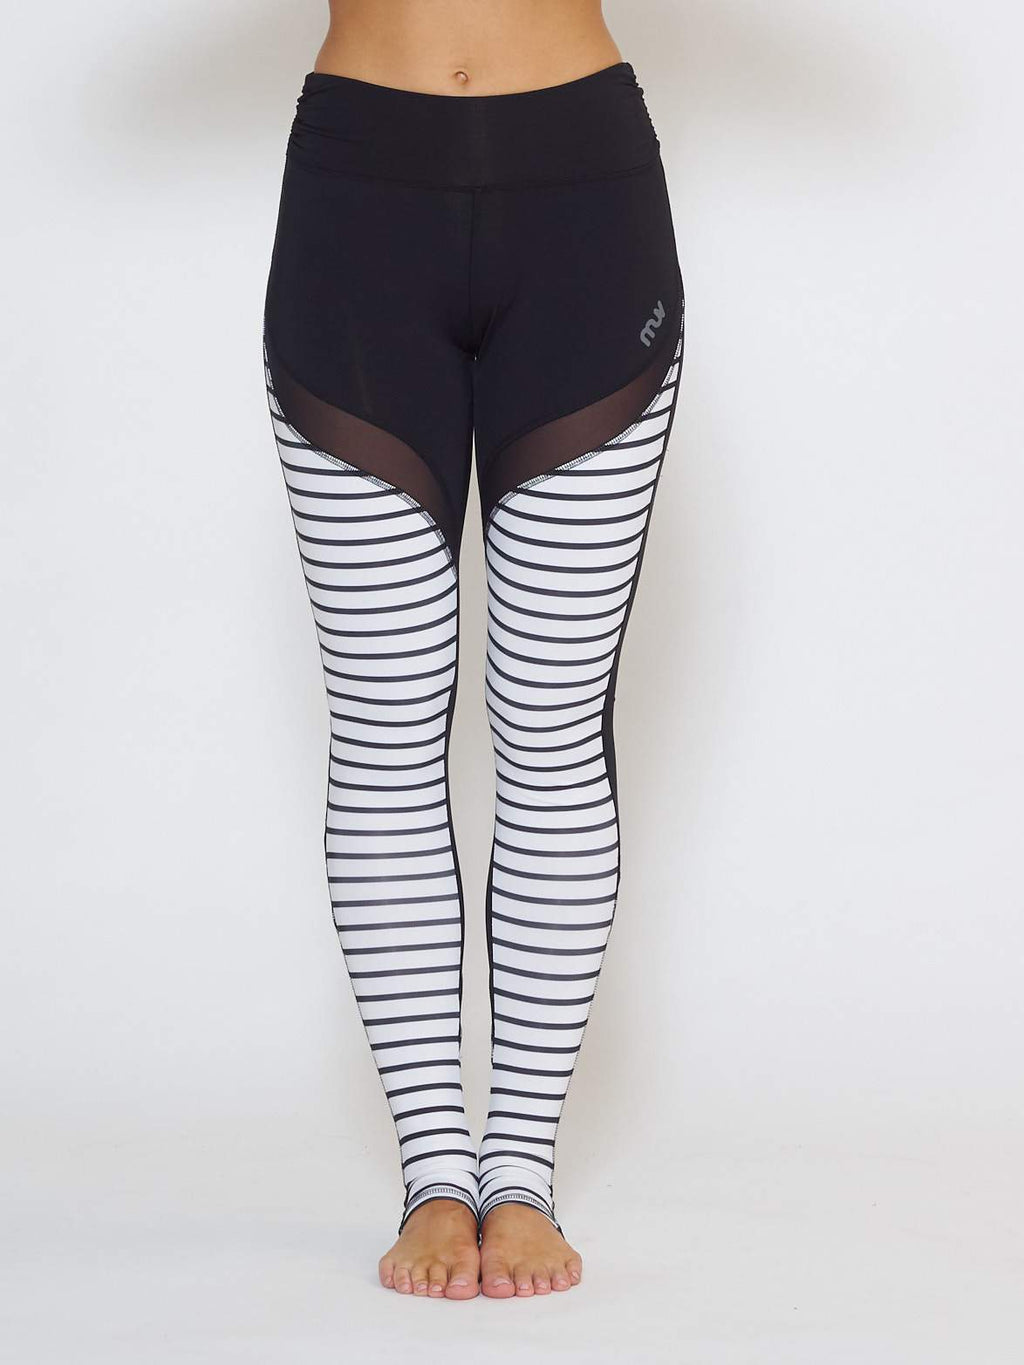 MUV Sportswear Long Sleeve Top GALE Full-Length Legging - Stripe